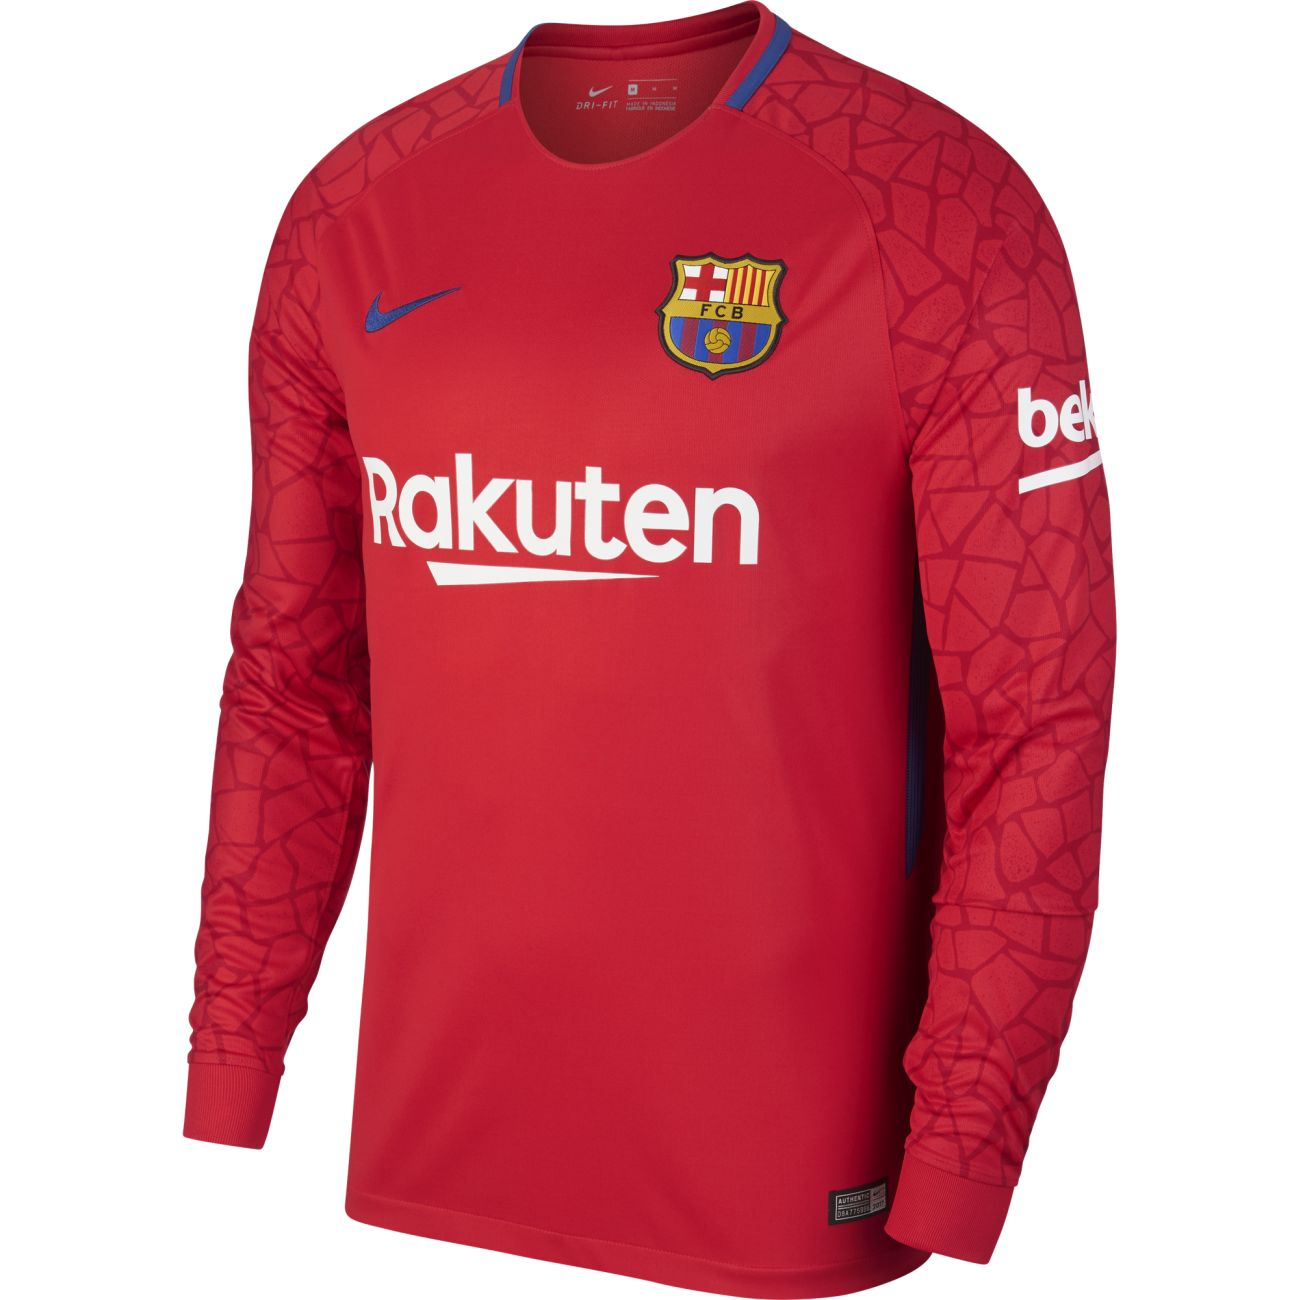 d0e43d6f659 Other Products · Go · Main page » Primera Division Spain » FC Barcelona »  Barcelona Player » FC Barcelona Away Goalkeeper Jersey 2017-18